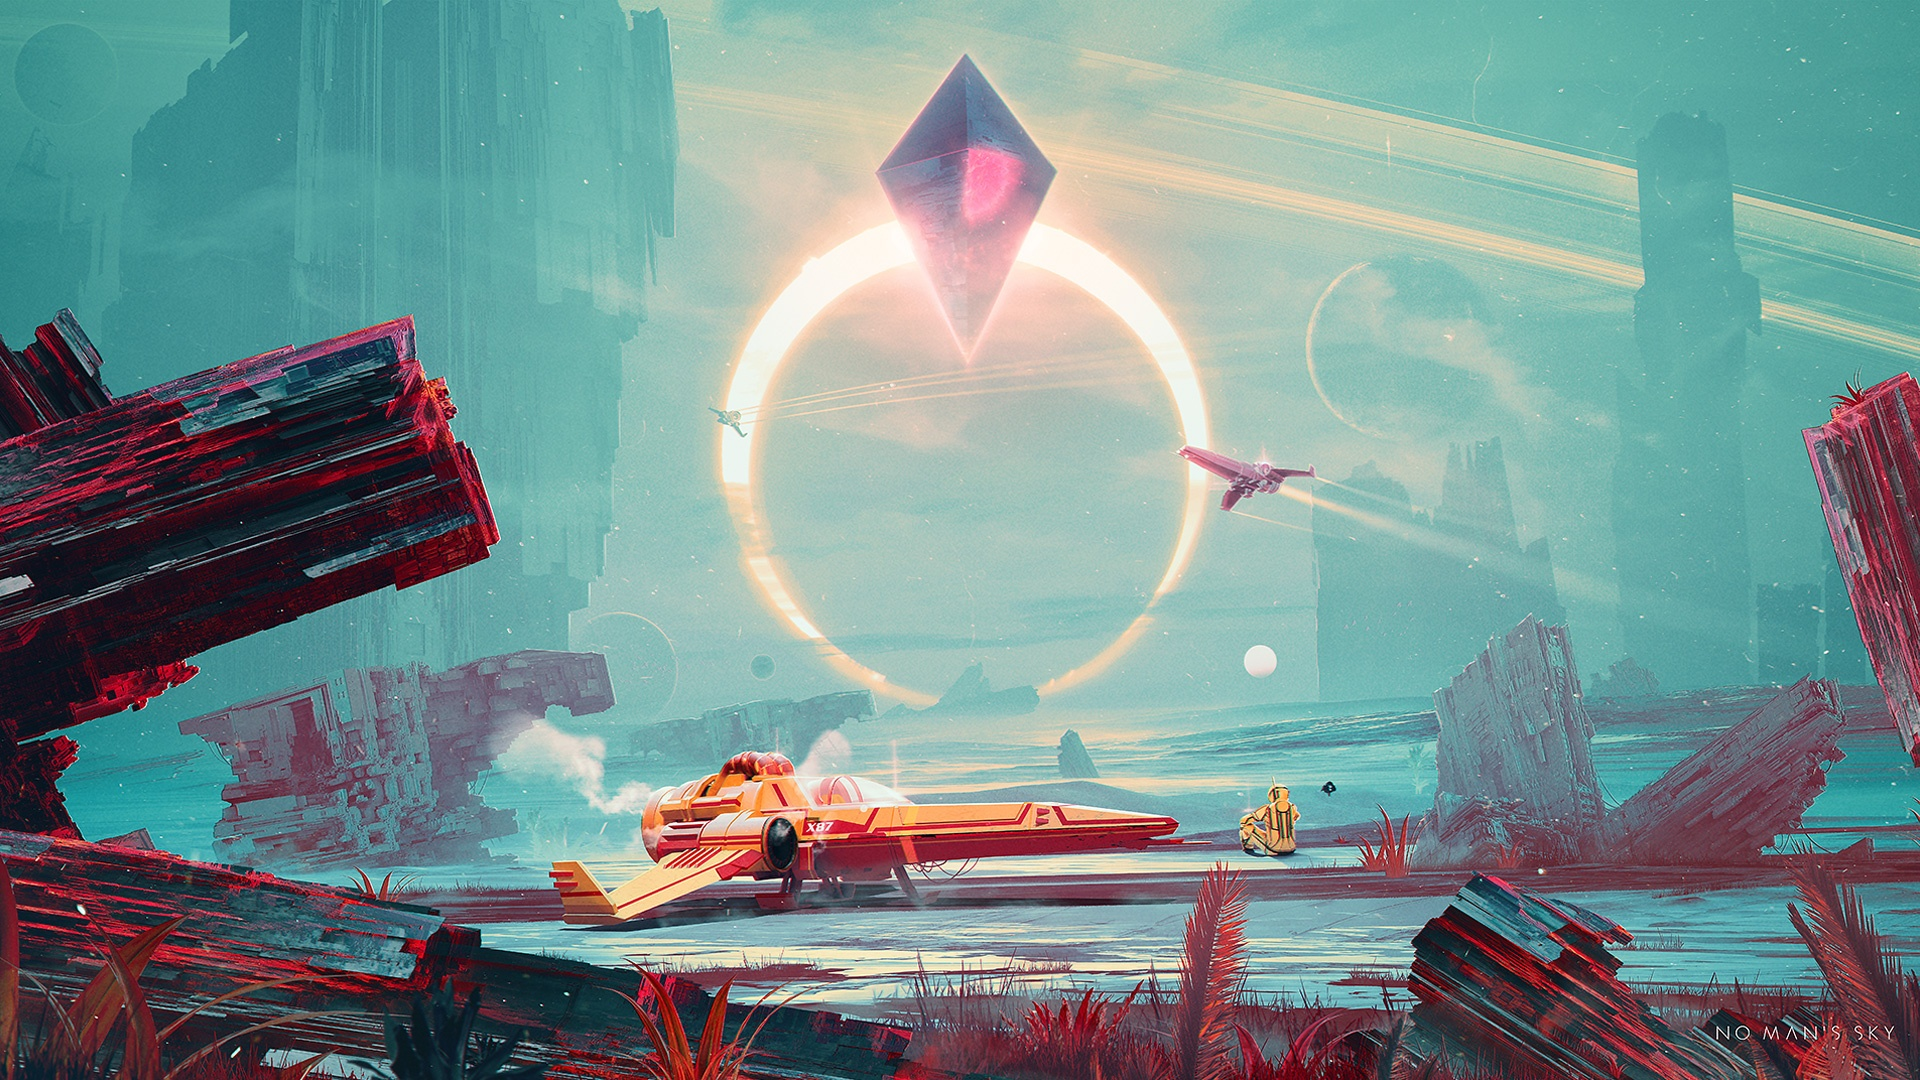 No Mans Sky Wallpapers HD Wallpapers 1920x1080